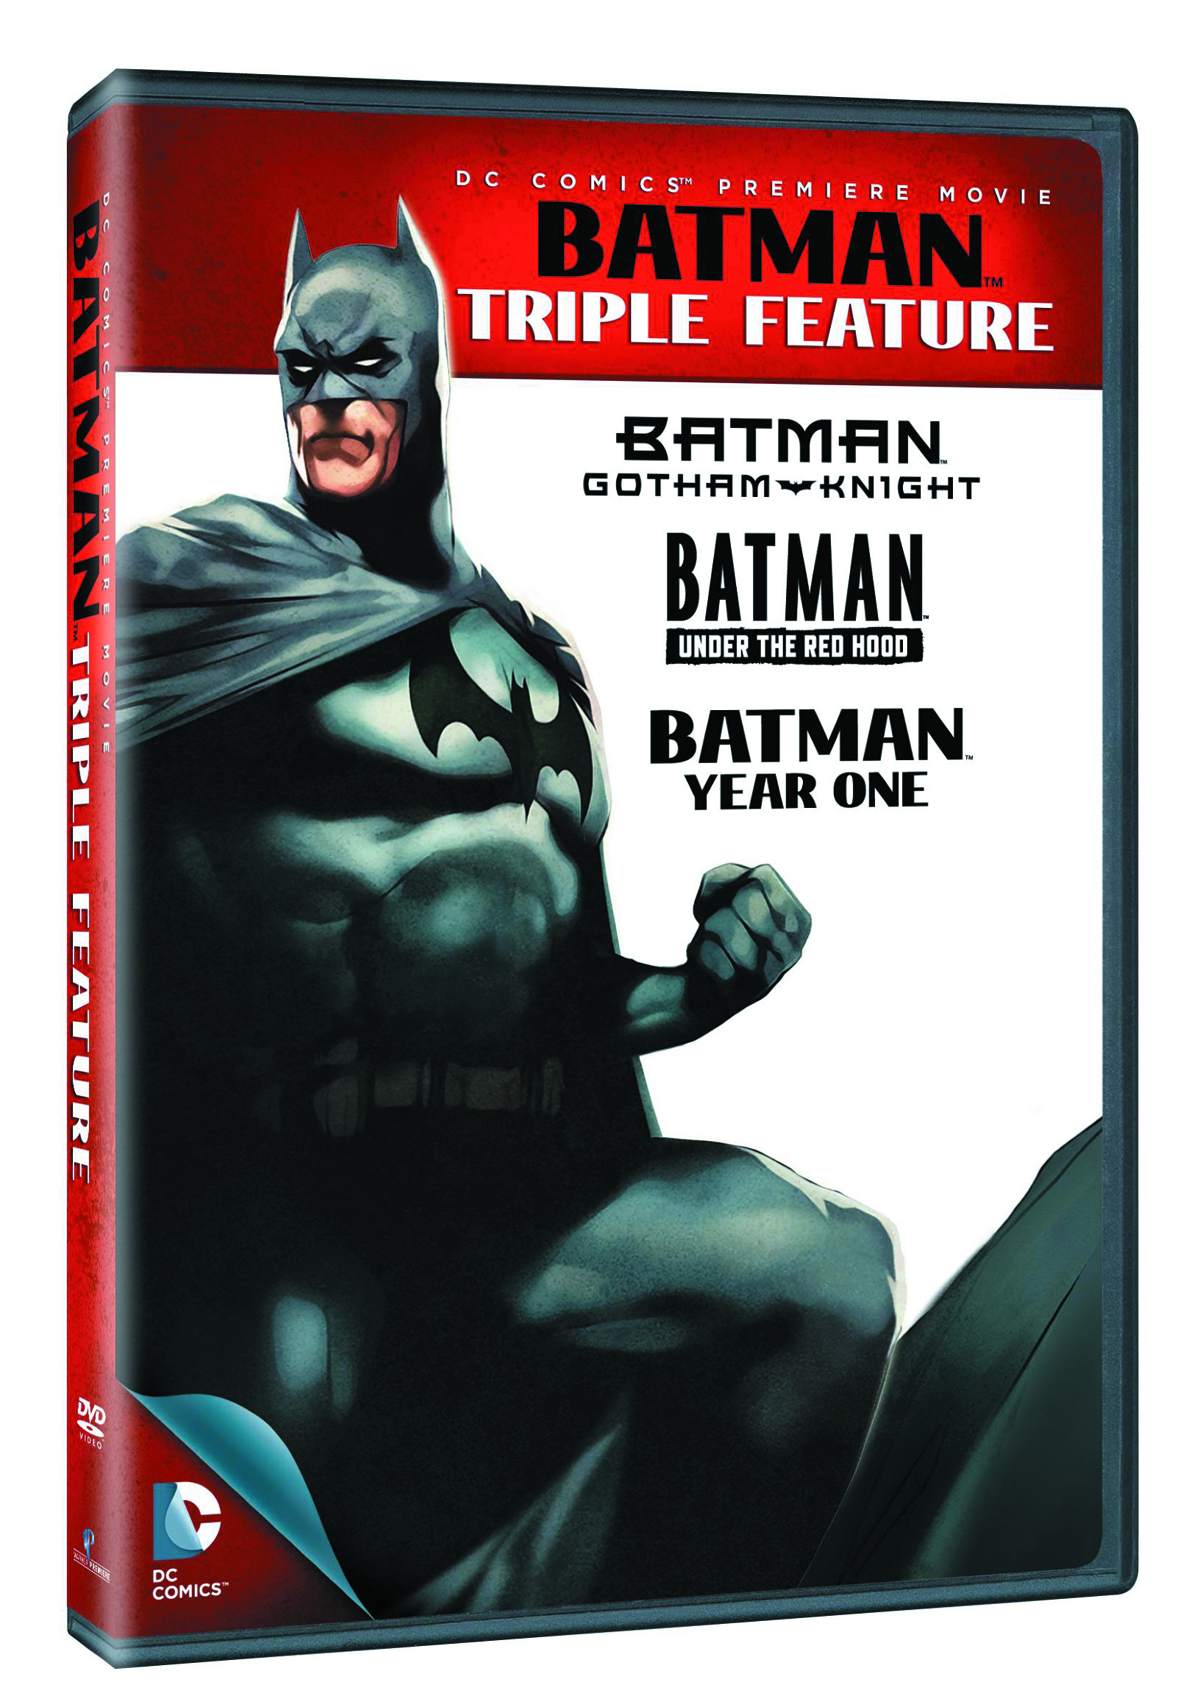 BATMAN TRIPLE FEATURE DVD